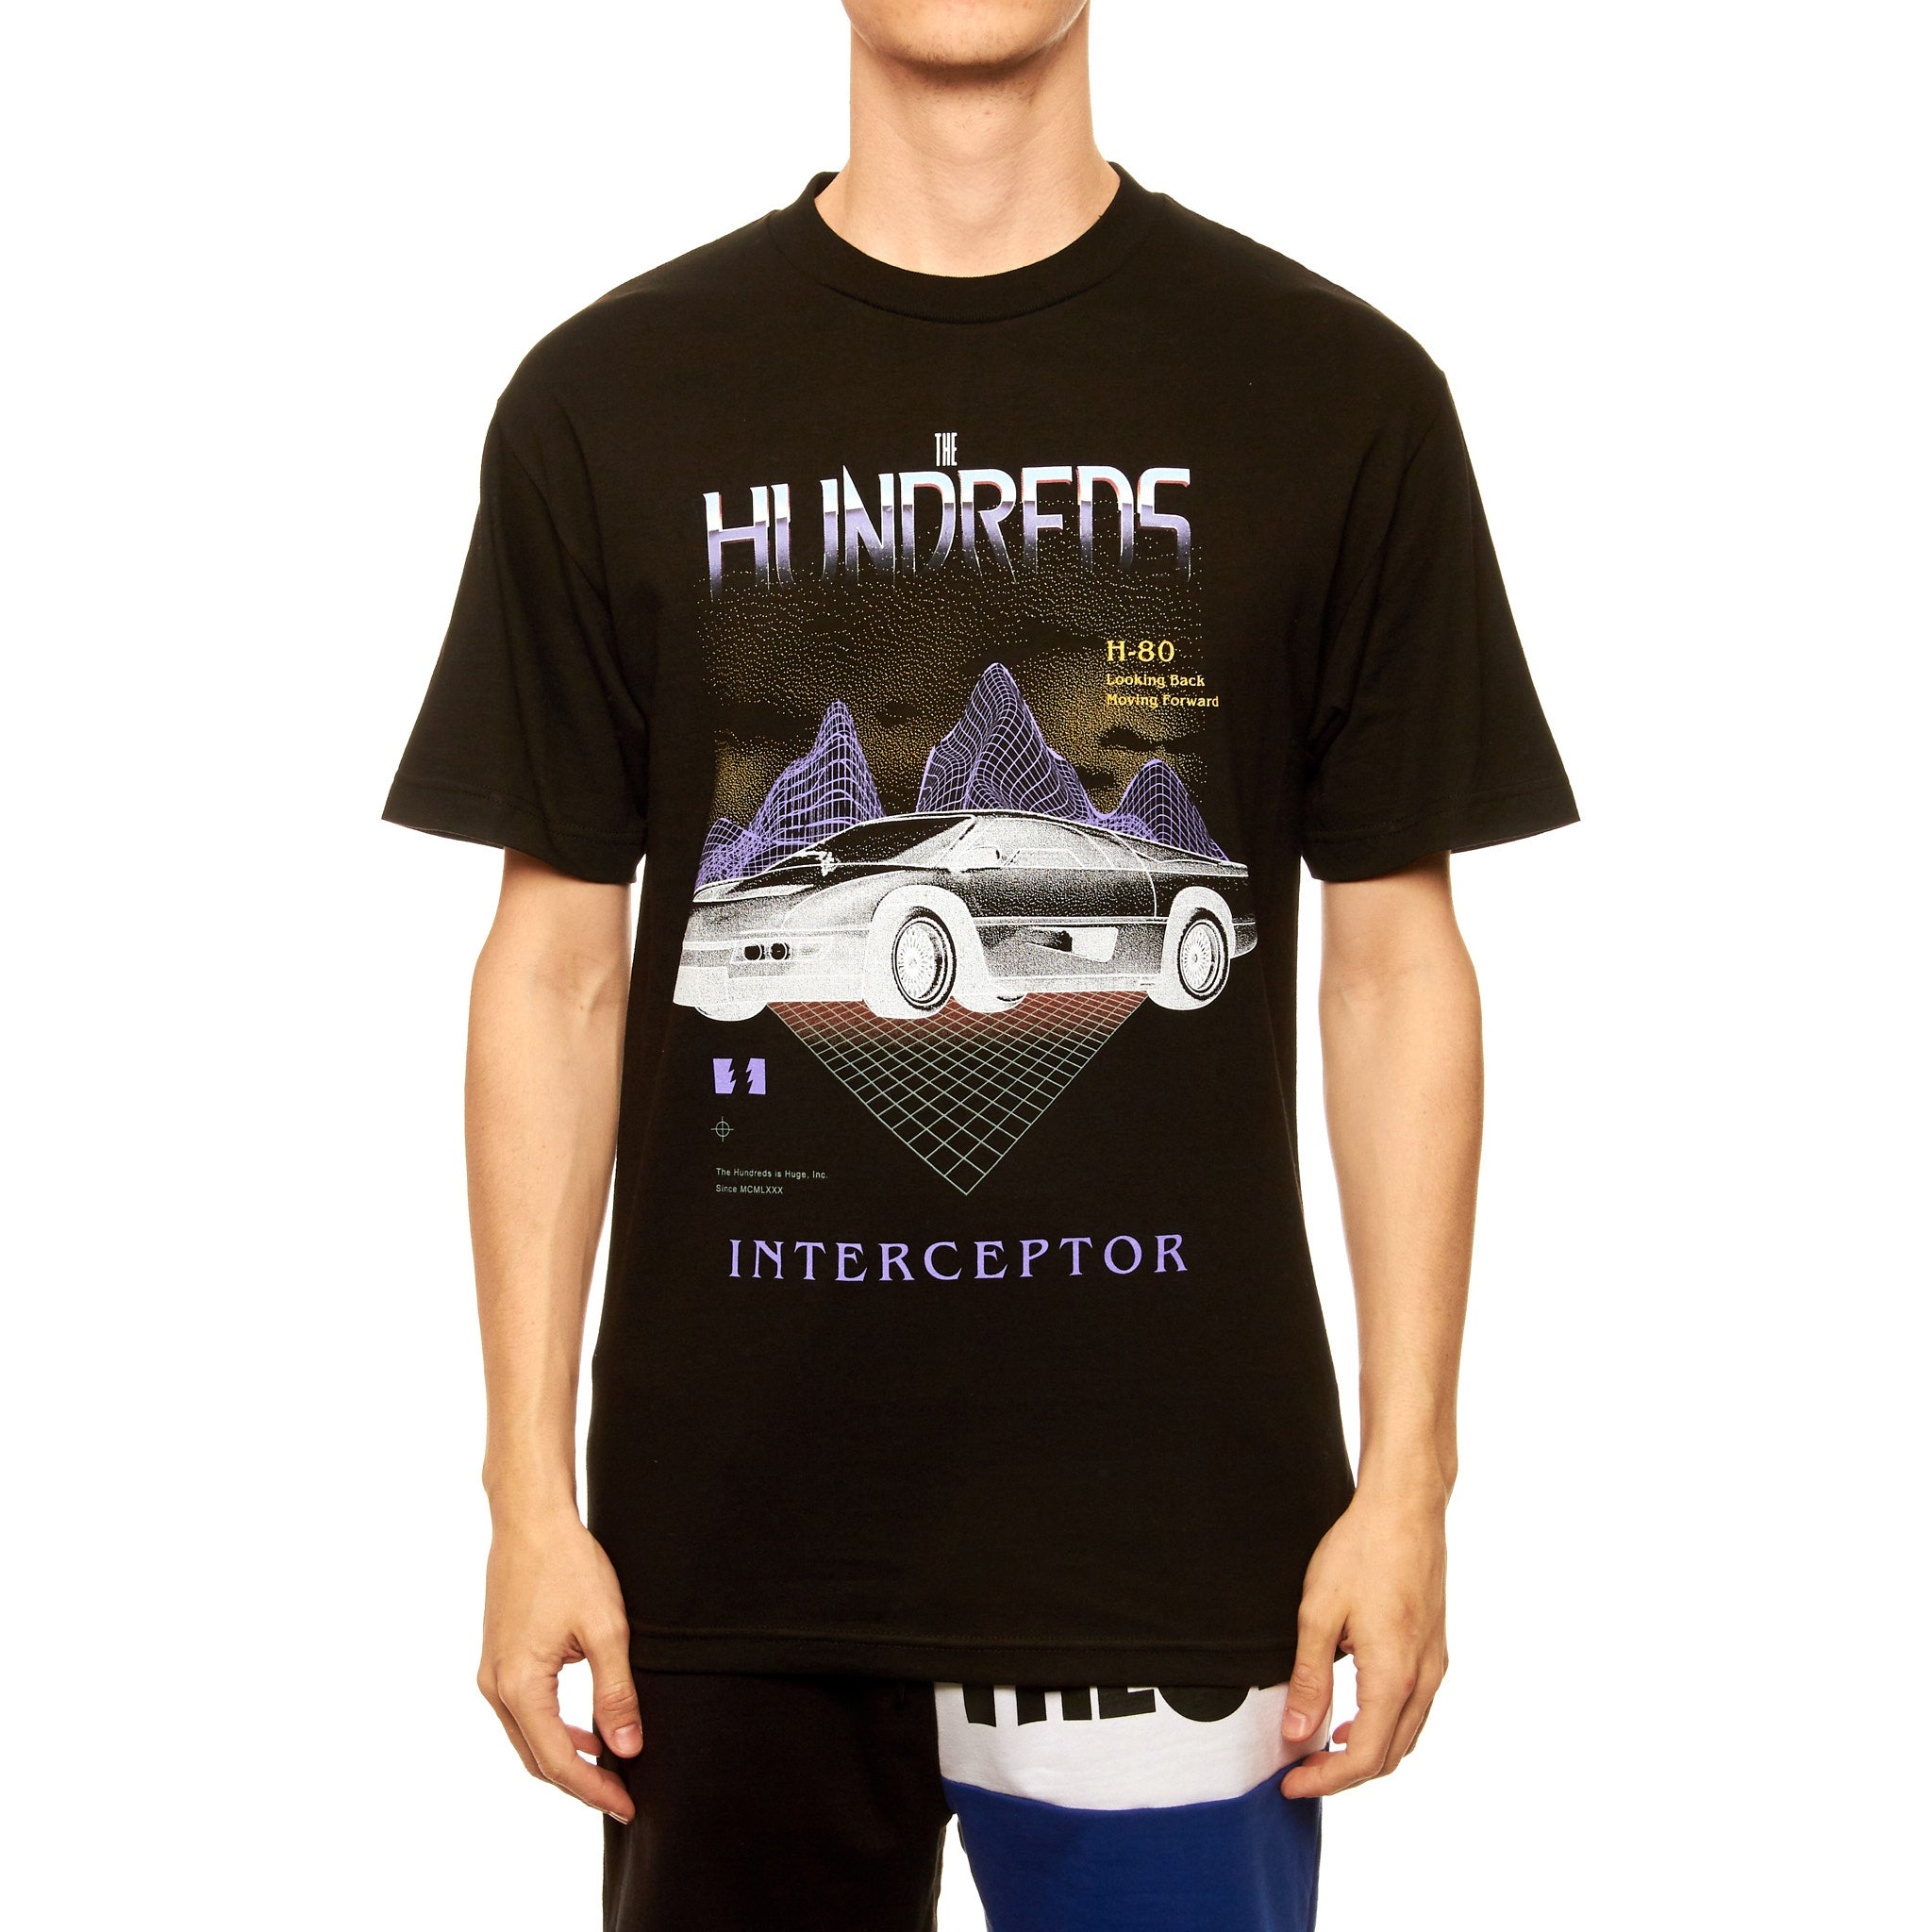 Interceptor Tshirt